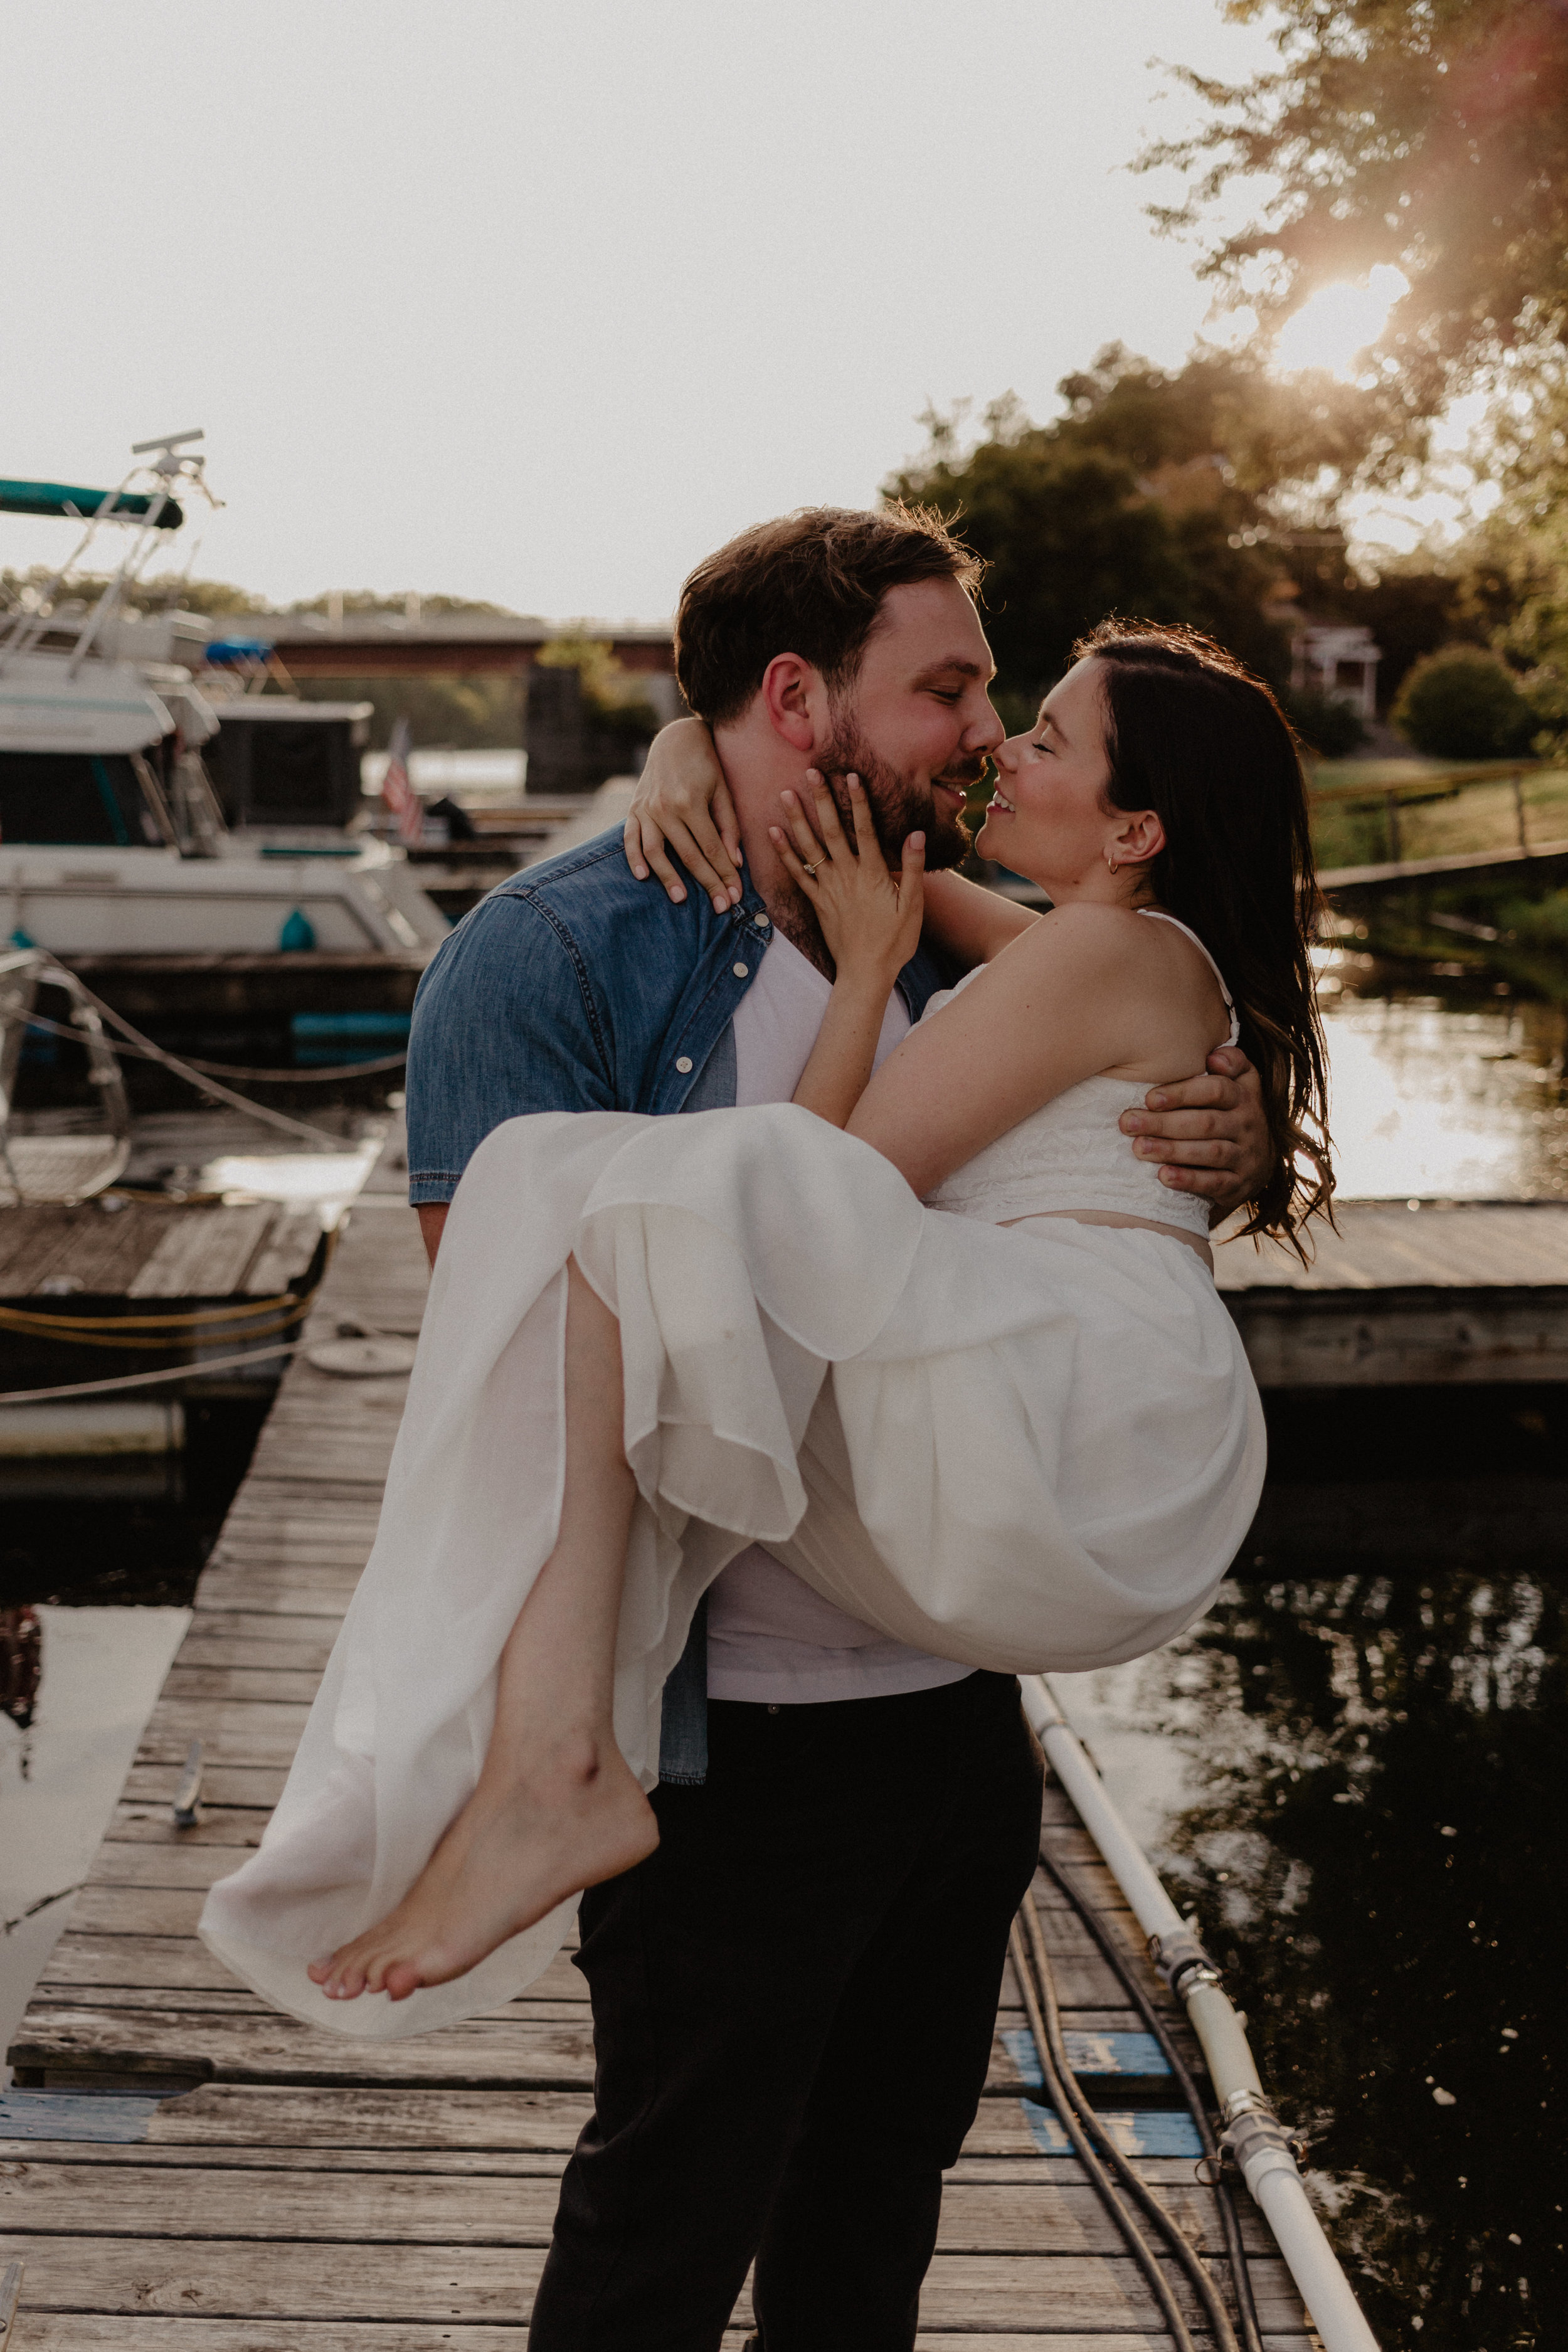 schenectady-yacht-club-engagement-11.jpg